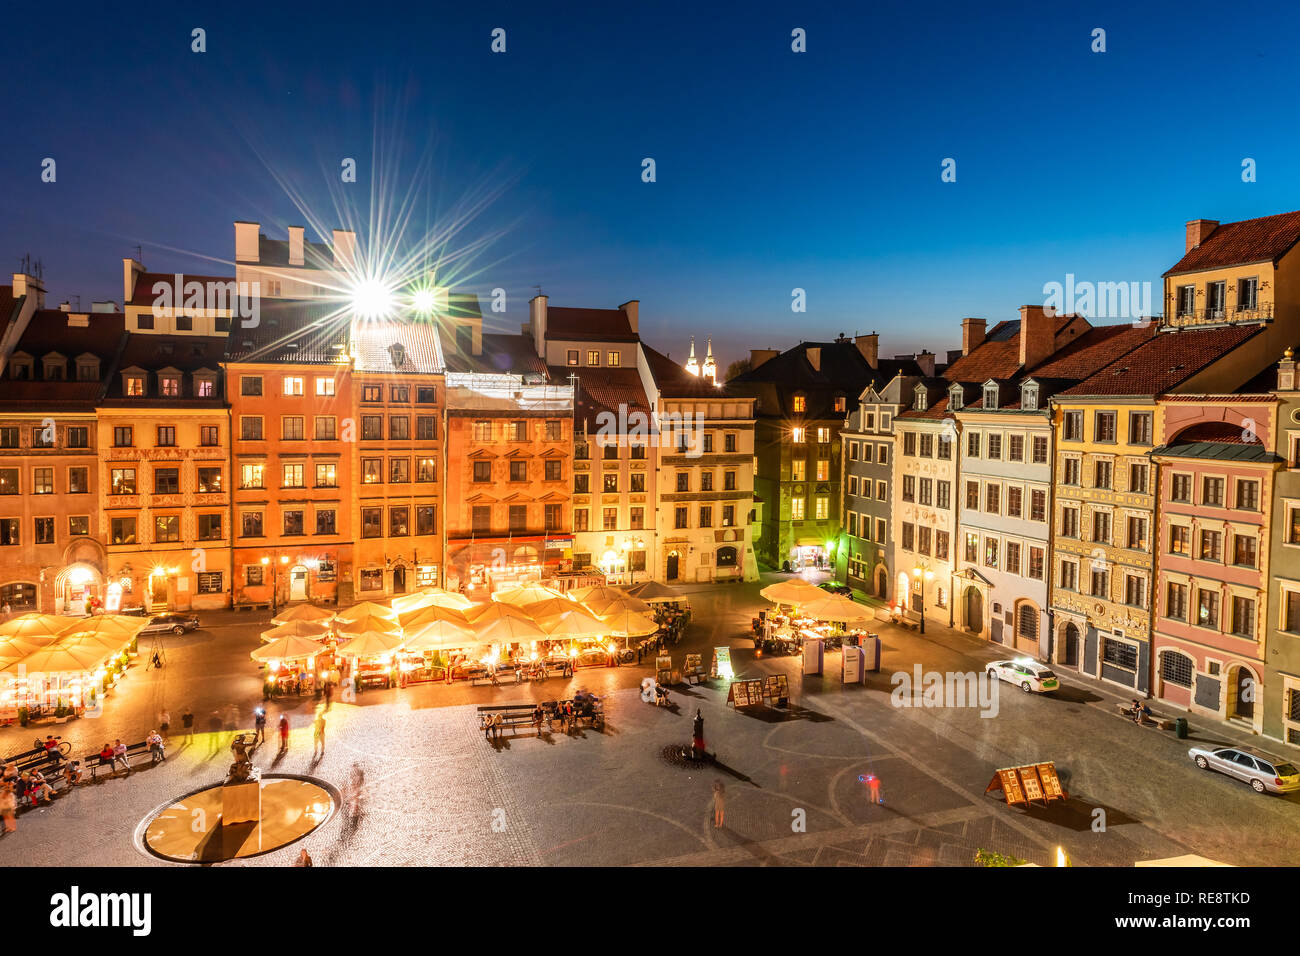 Warsaw, Poland - August 22, 2018: Cityscape with high angle view of architecture rooftop buildings restaurant and dark sky in old town market square a Stock Photo